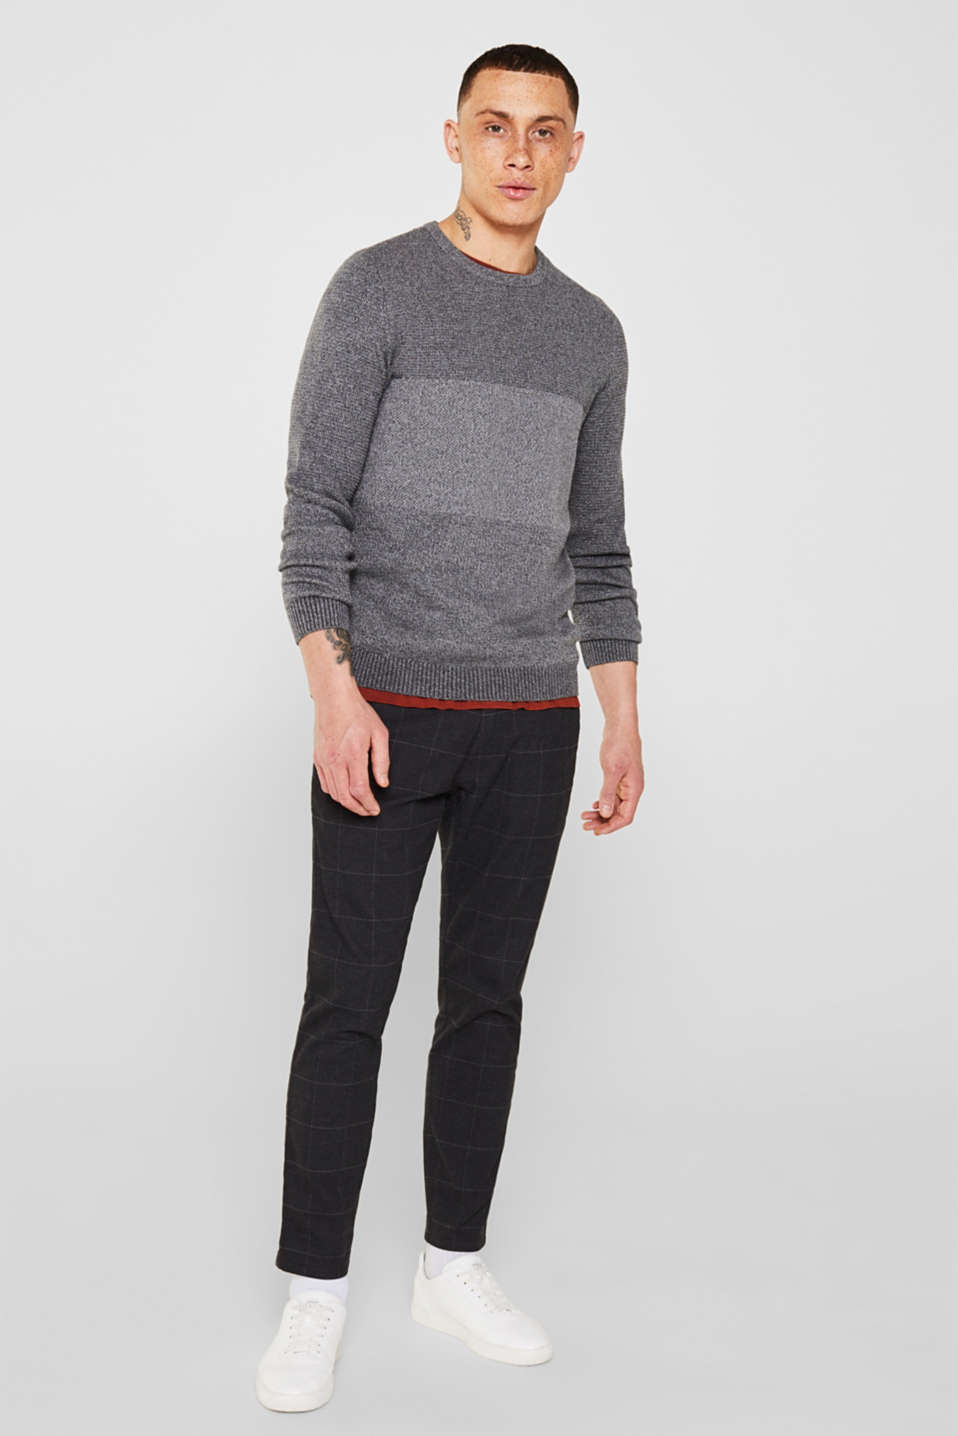 Jumper with textured stripes, 100% cotton, MEDIUM GREY, detail image number 0